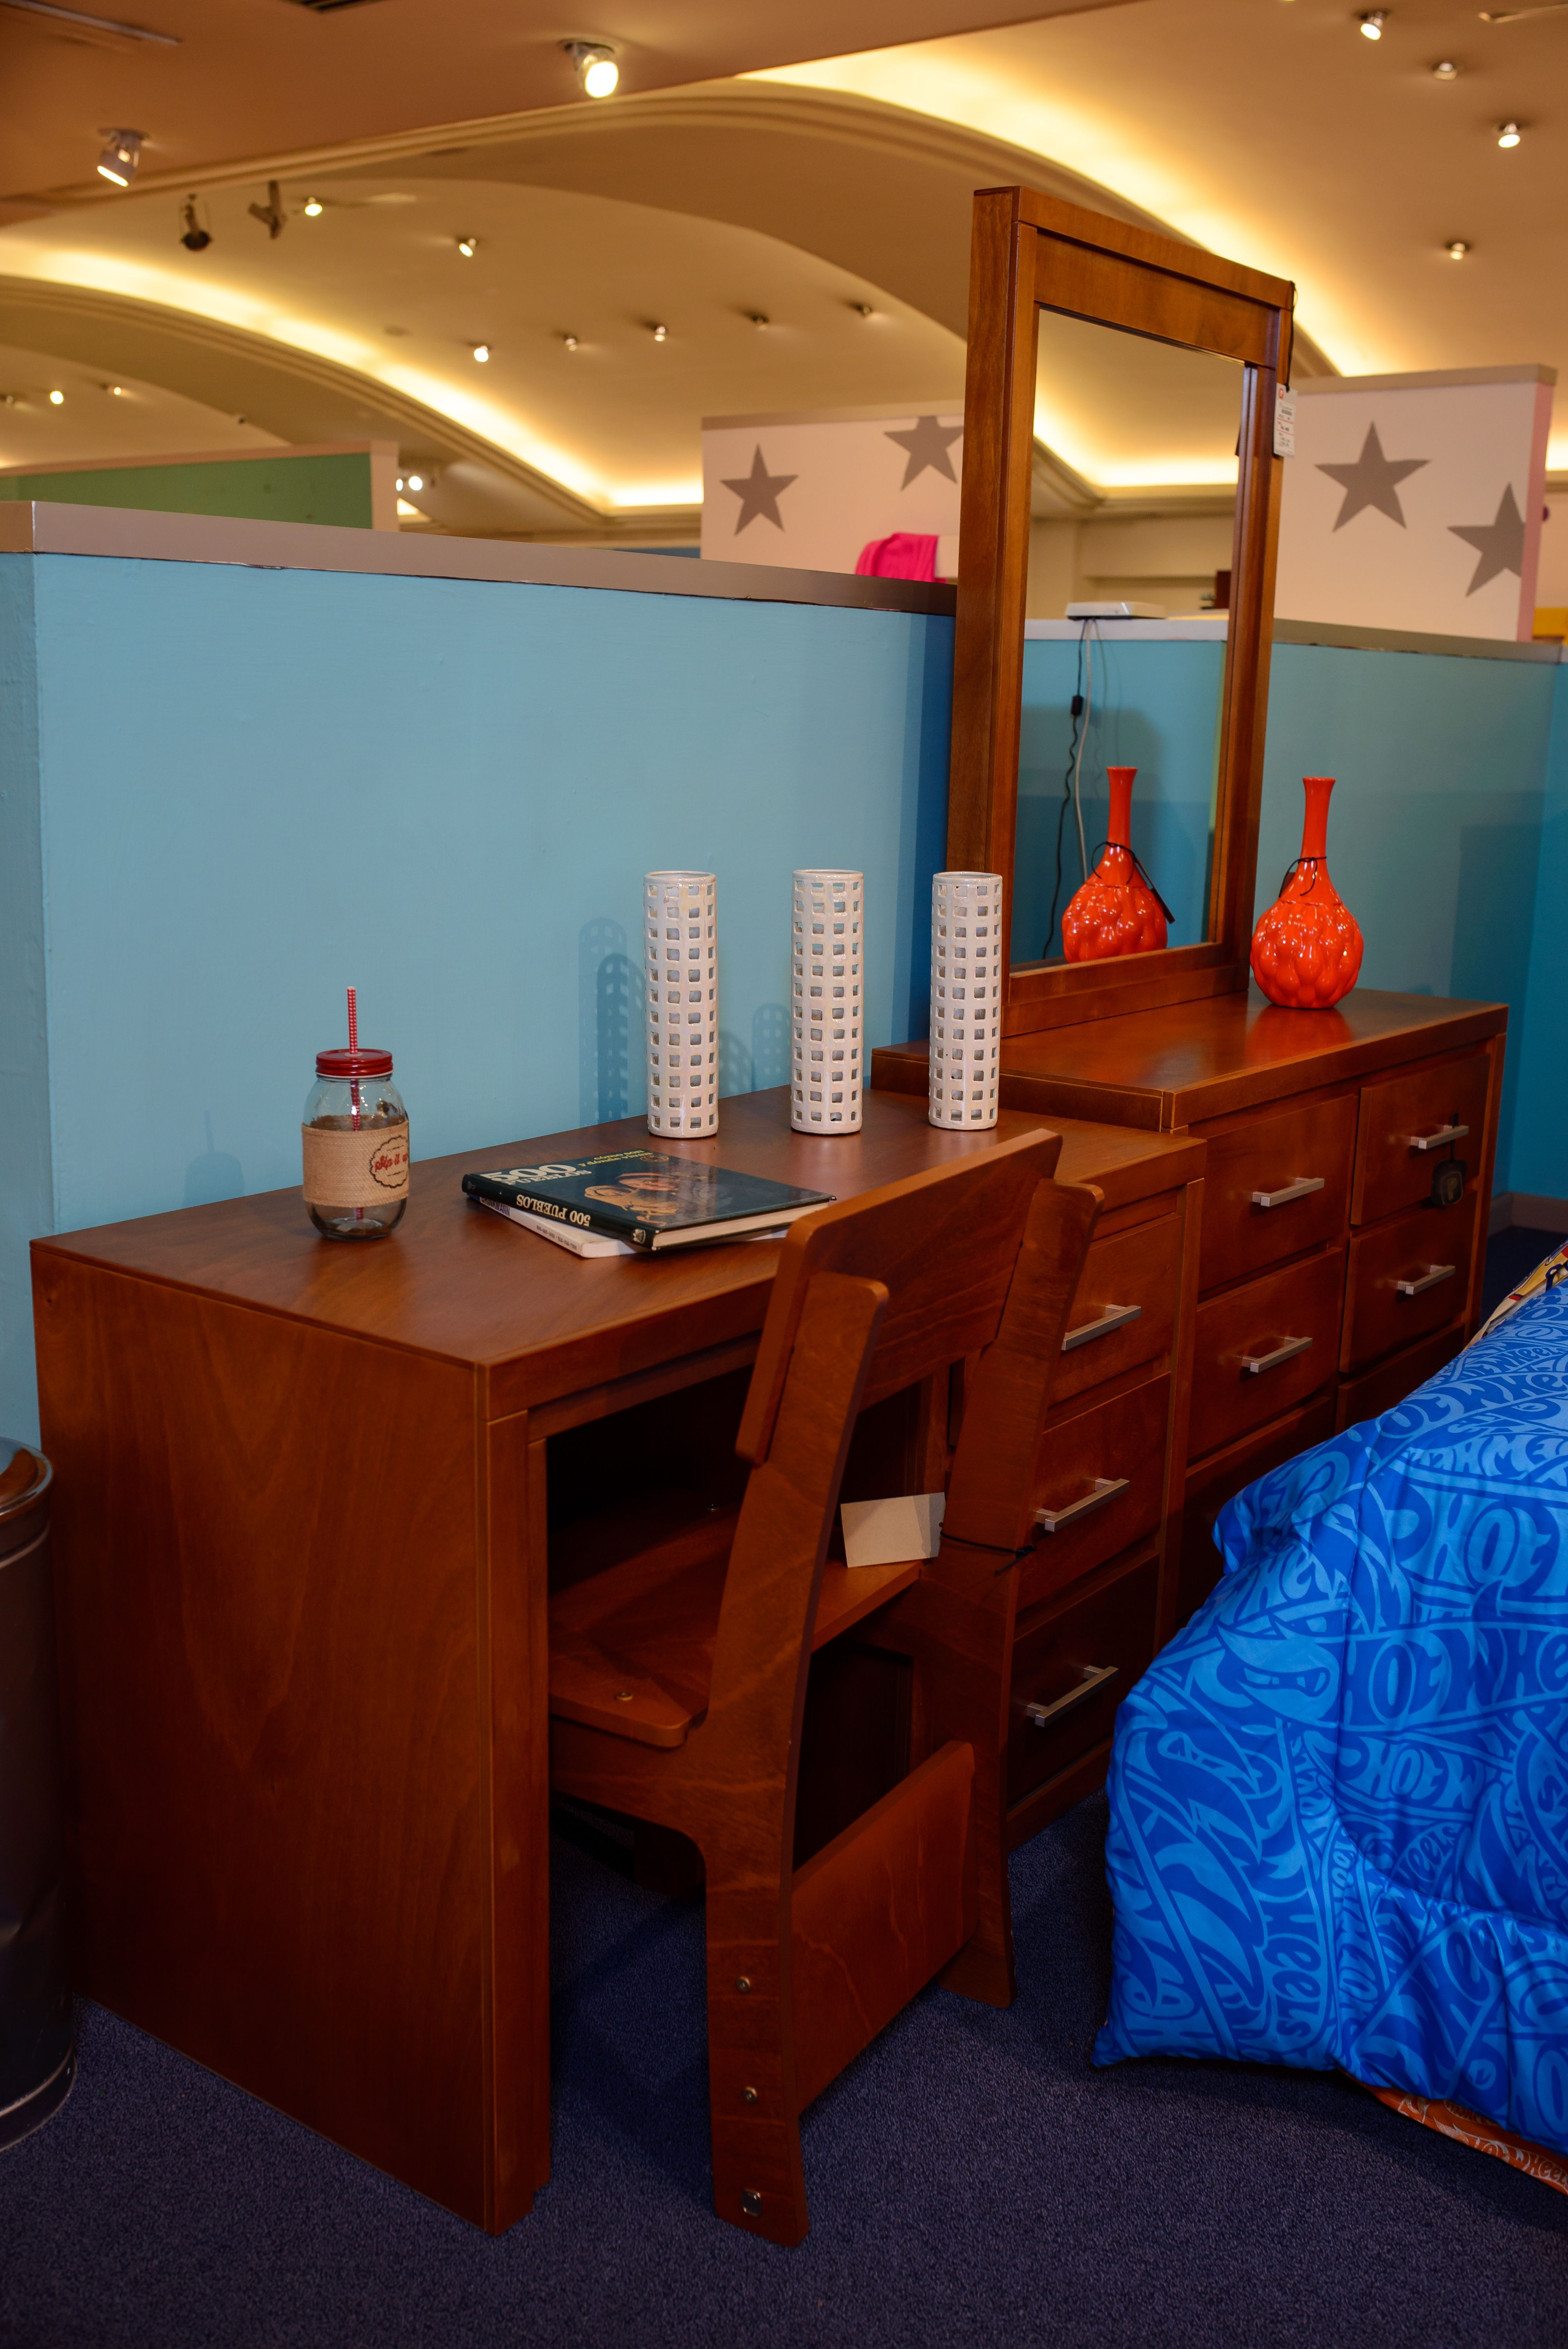 Plasencia Muebles Pin De Placencia Muebles En Kids And Teens Pinterest